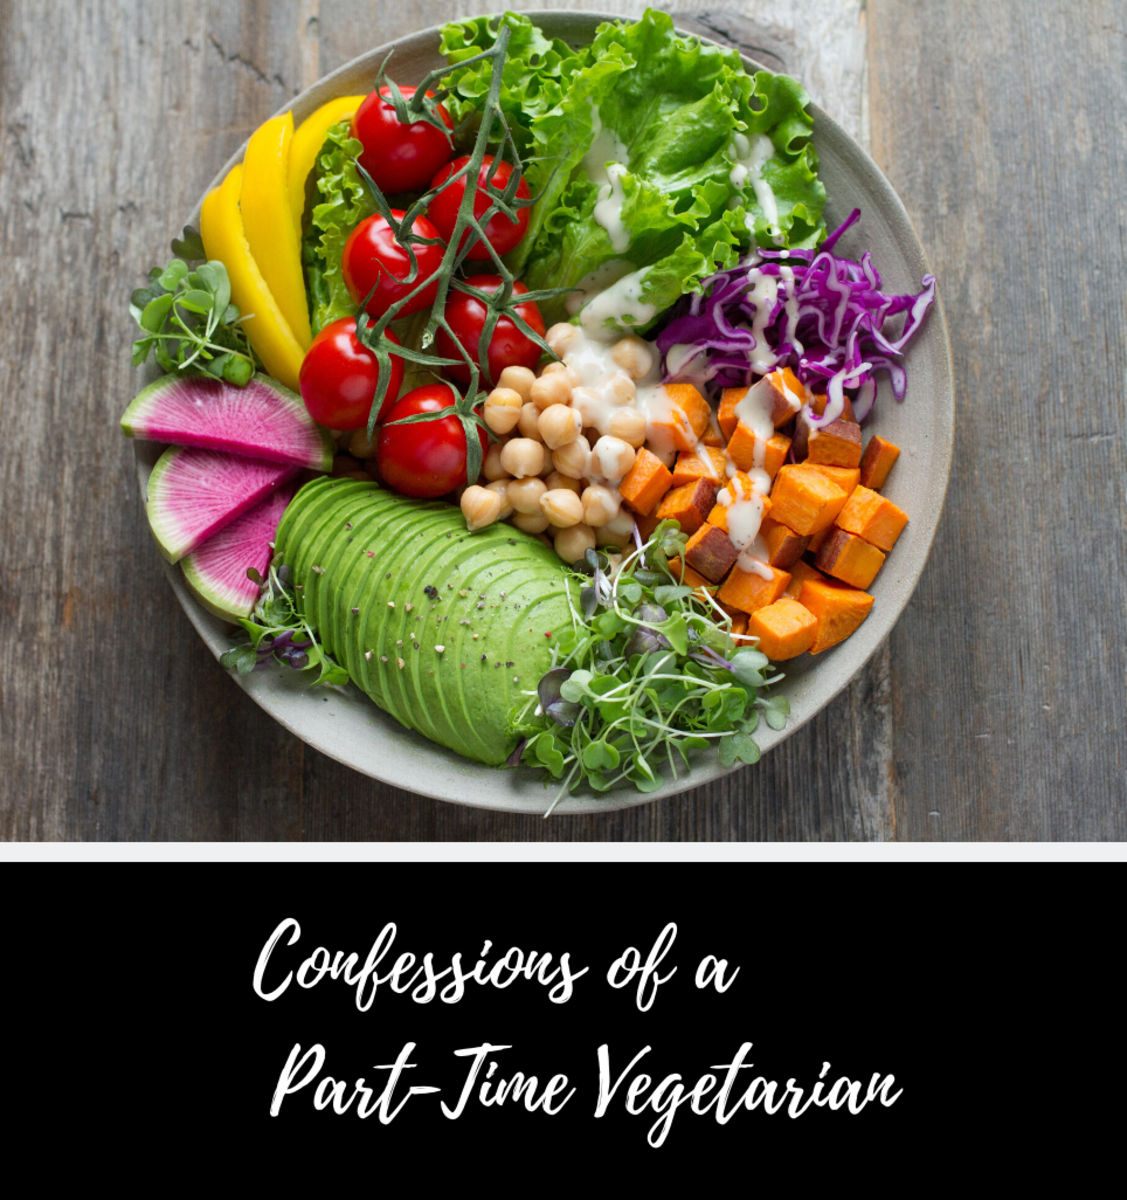 Living a vegetarian lifestyle is easier than you might think. Read on to learn more.